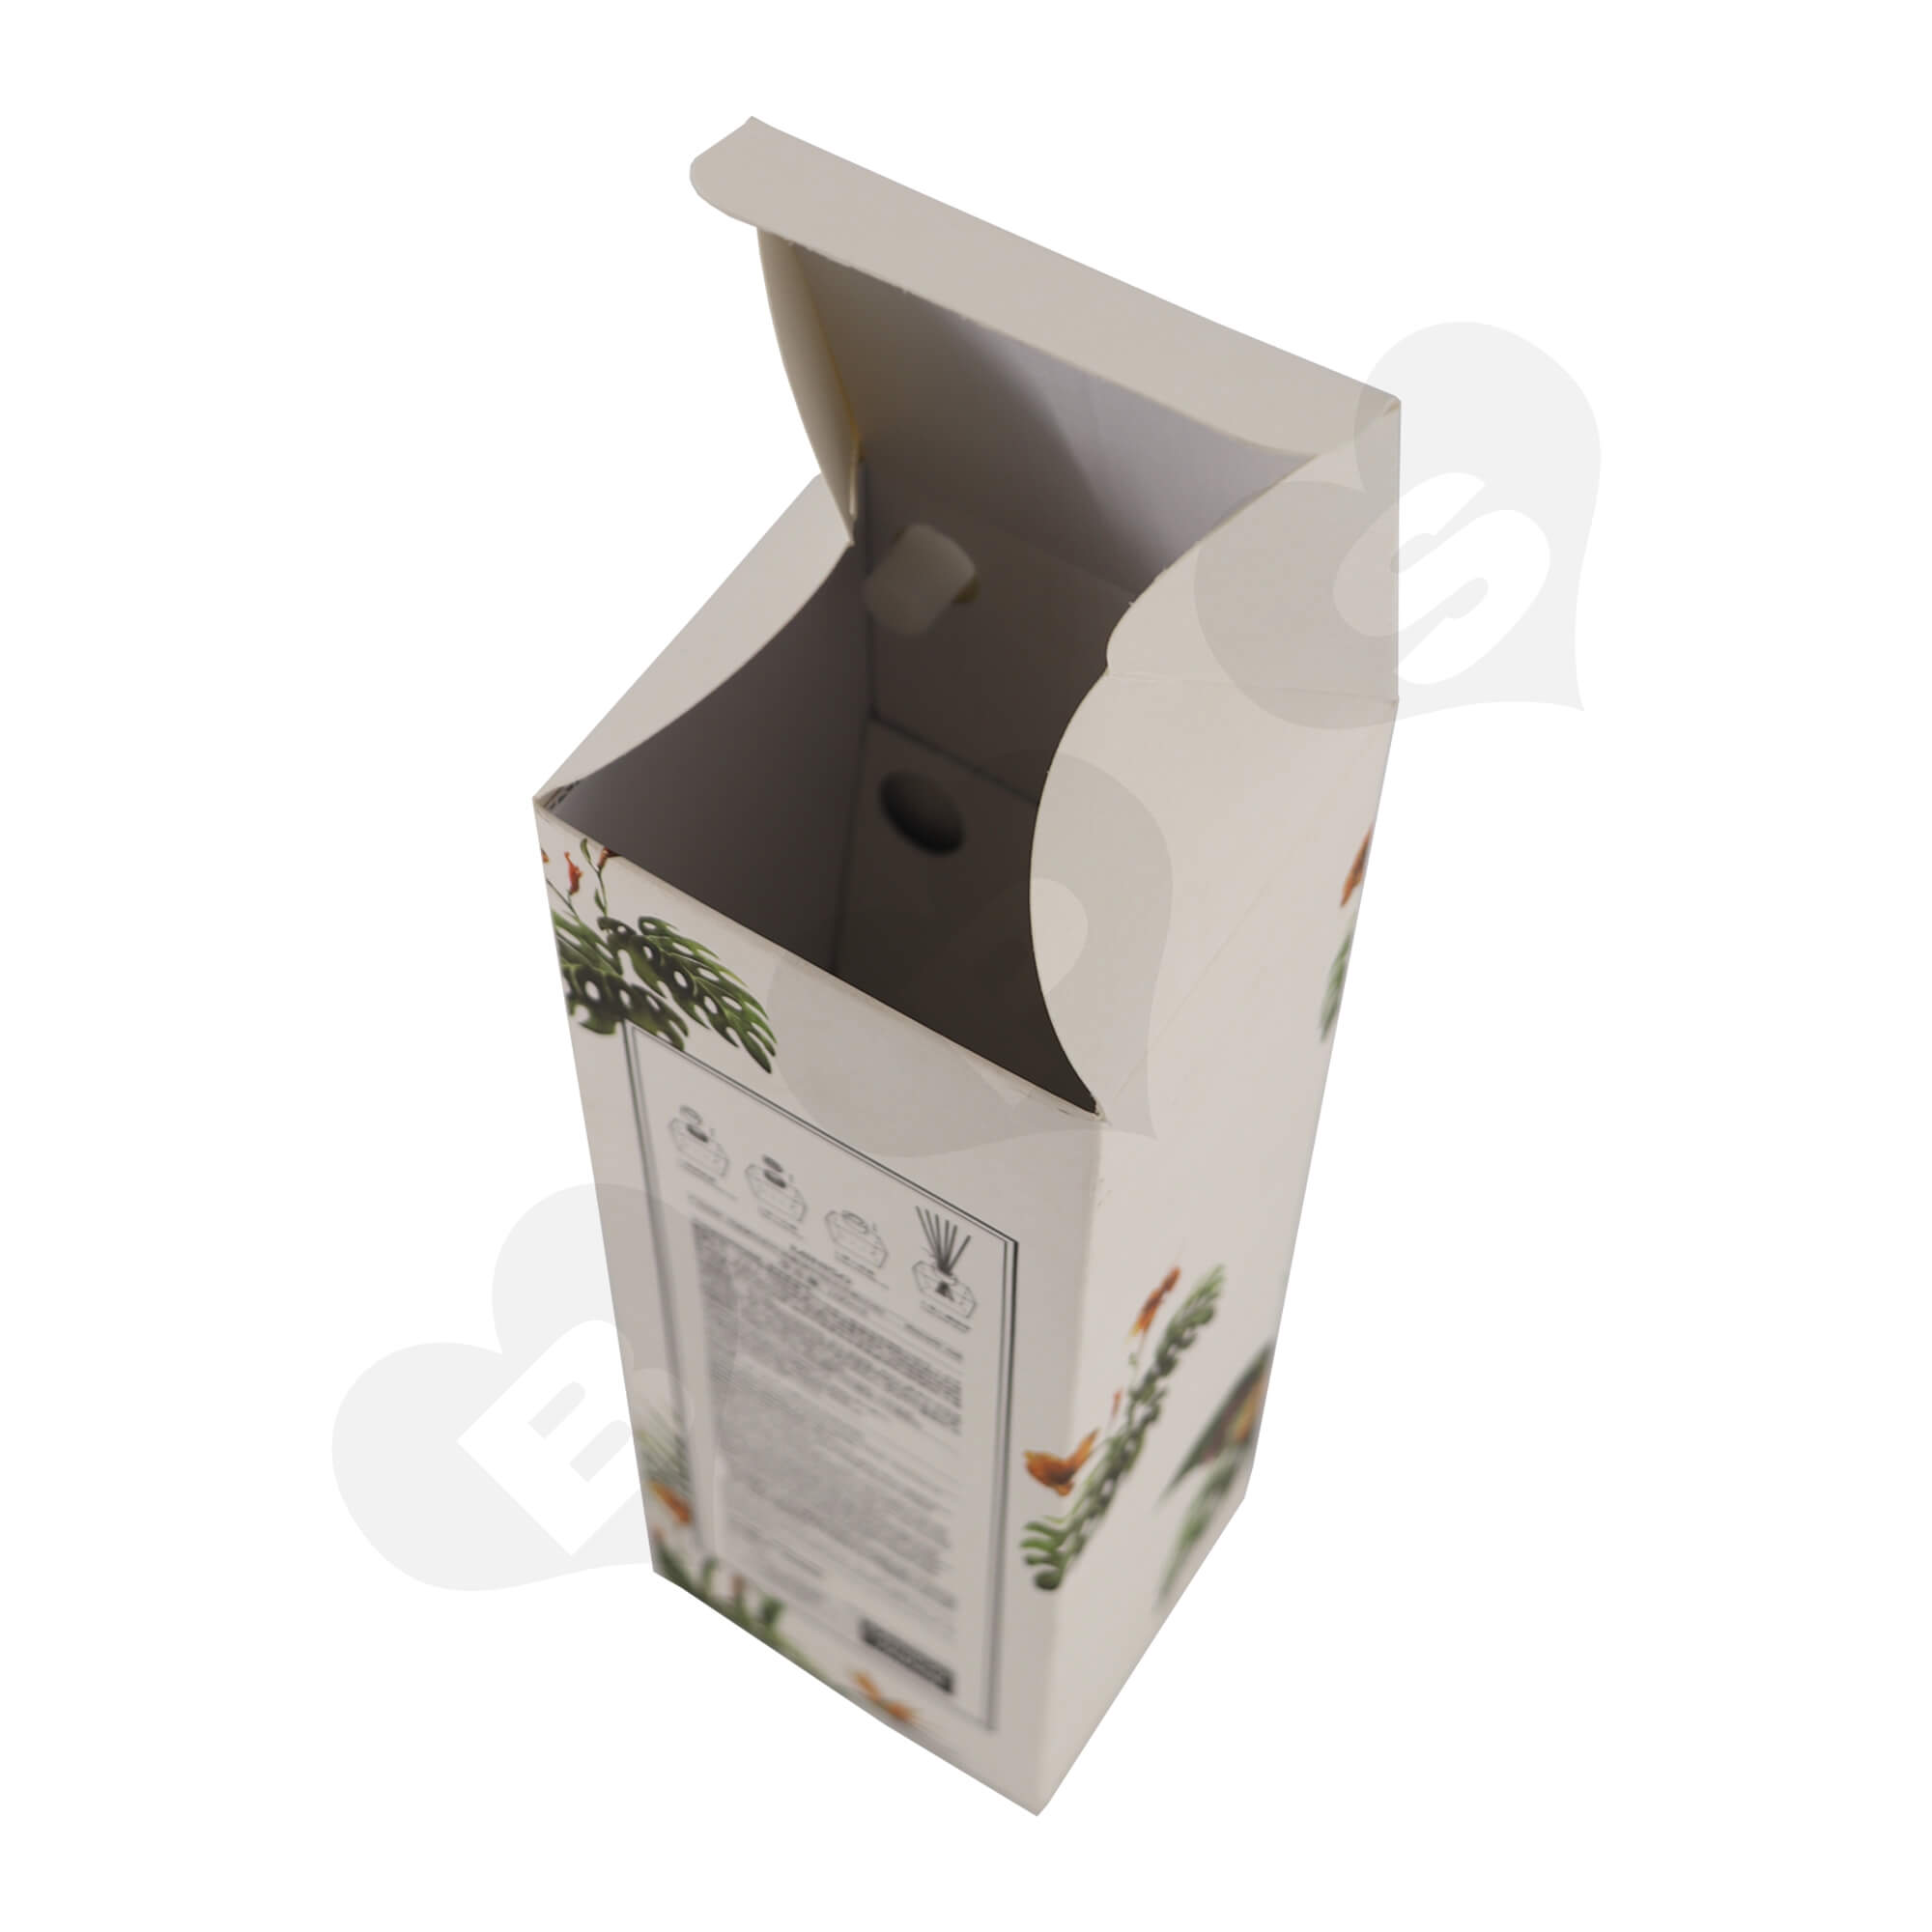 Cardboard Folding Carton For Packing Scent Diffuser With Testing Valve Side View Seven